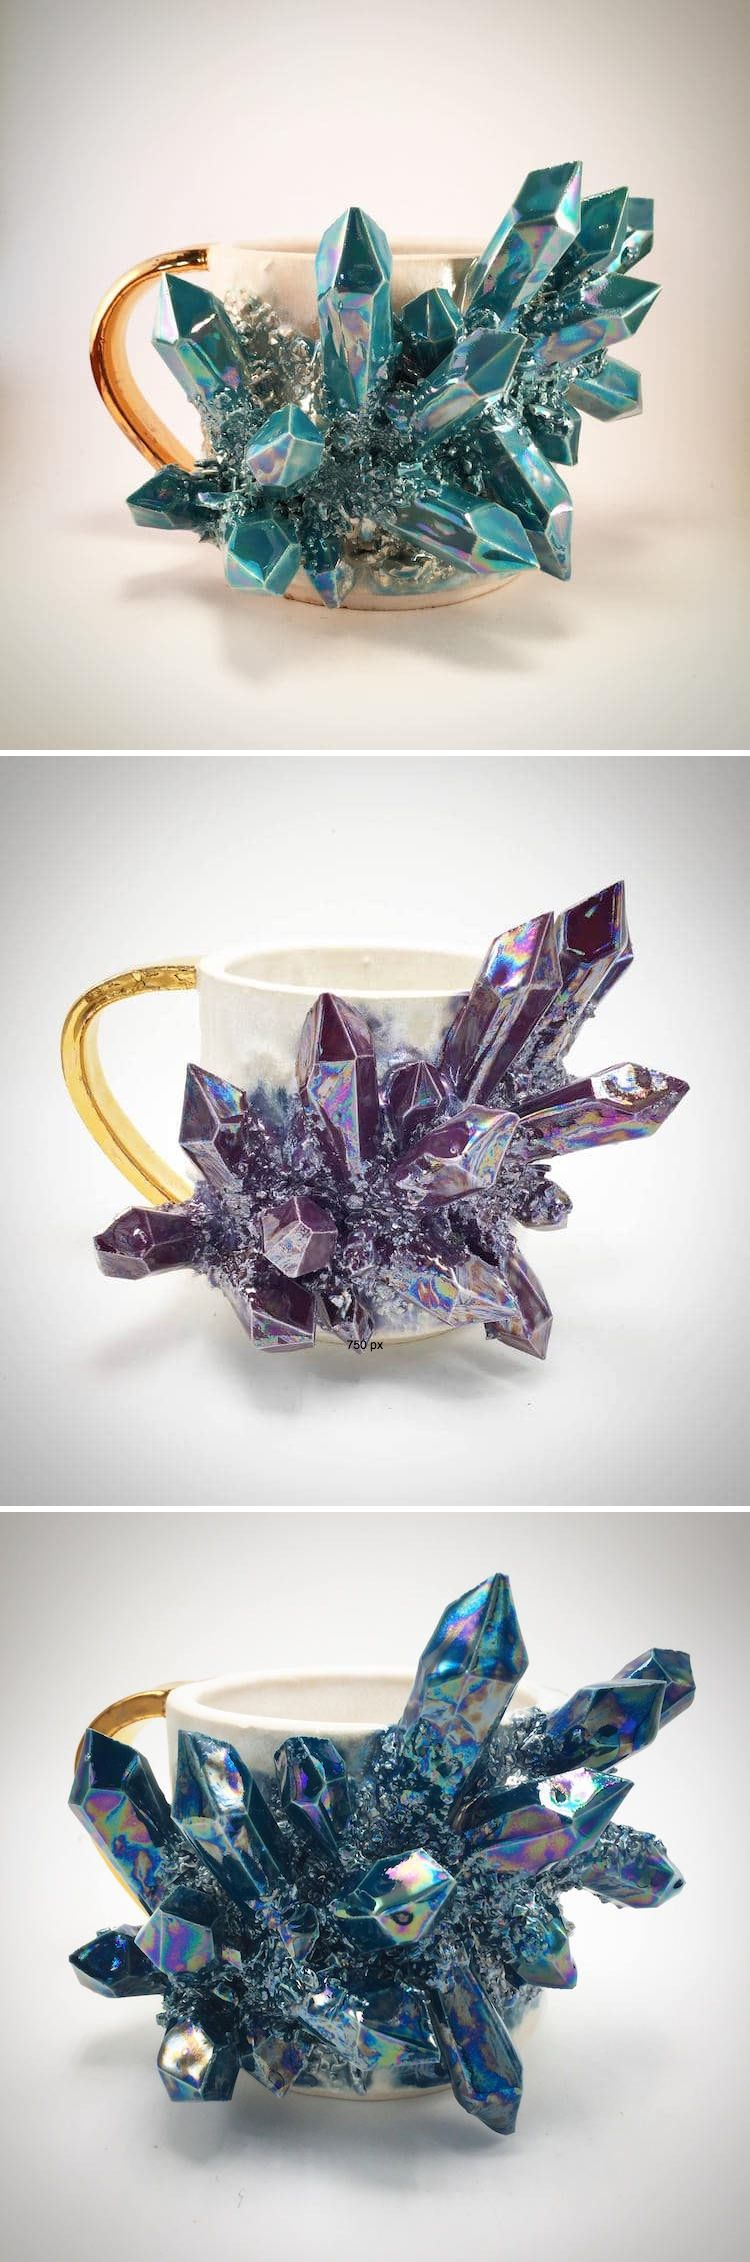 Iridescent Ceramic Mugs and Plates Bursting with Clusters of Dazzling Crystals